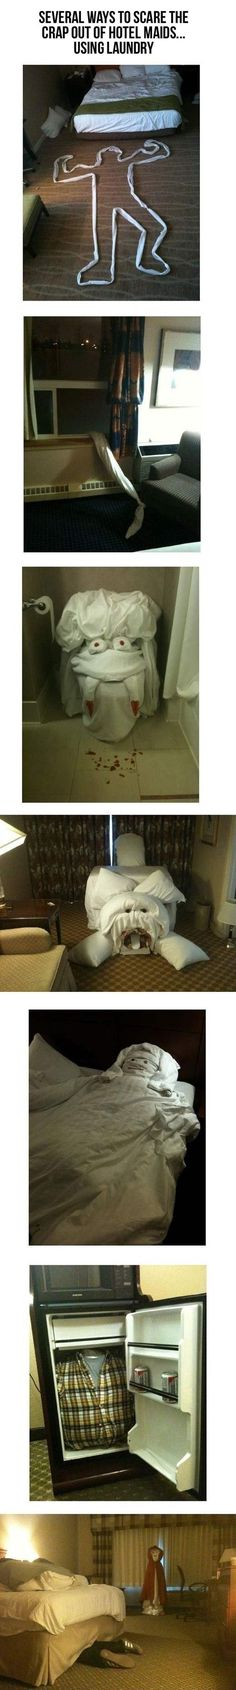 several ways to scare hotel maids.--- I shall do one day!